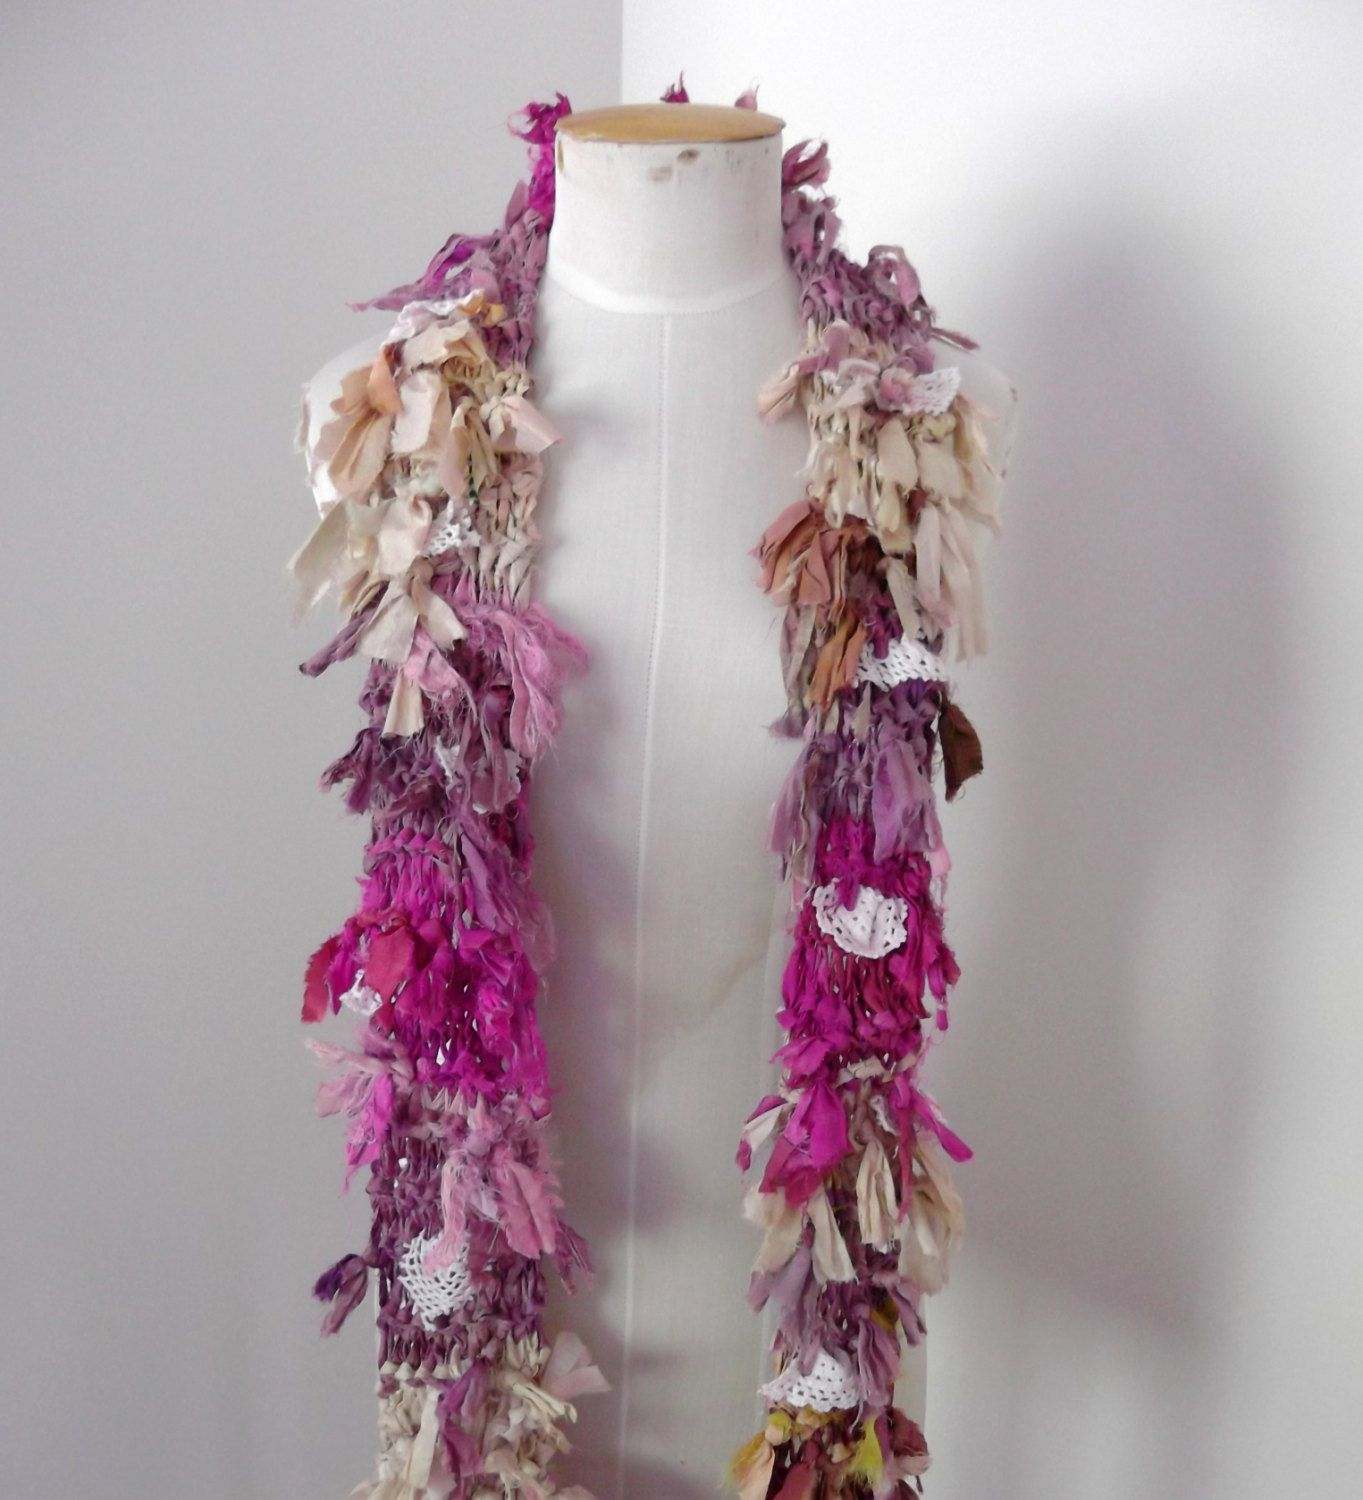 Wild Raggy Distressed Recycled Sari Silk Scarf pink beige cream and vintage lace via Etsy.